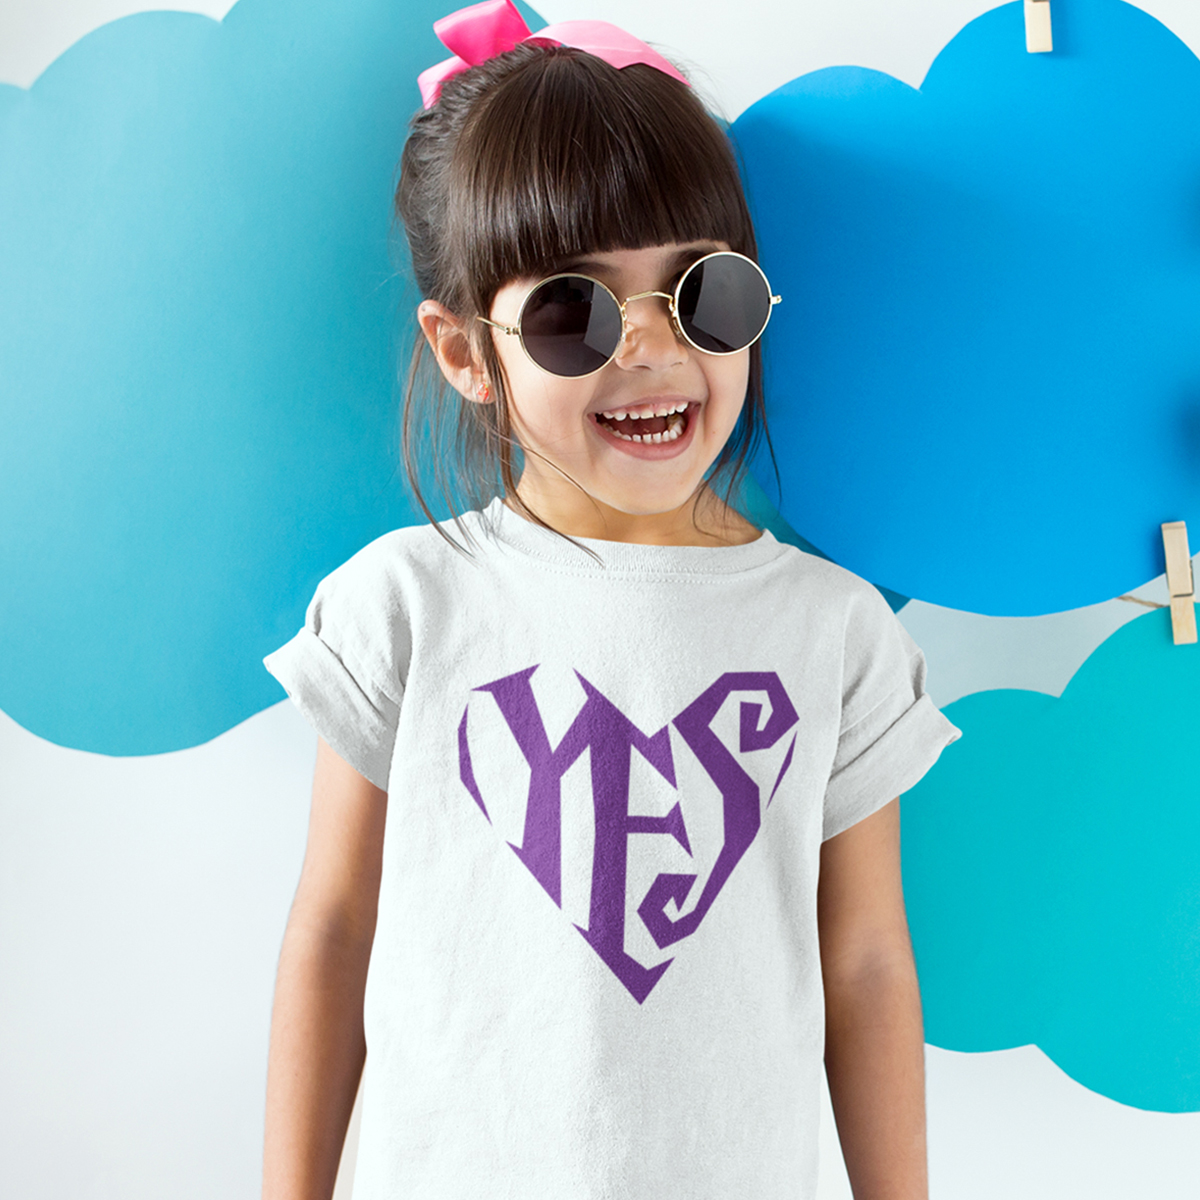 Yes/Heart Logo Kids' T-shirt